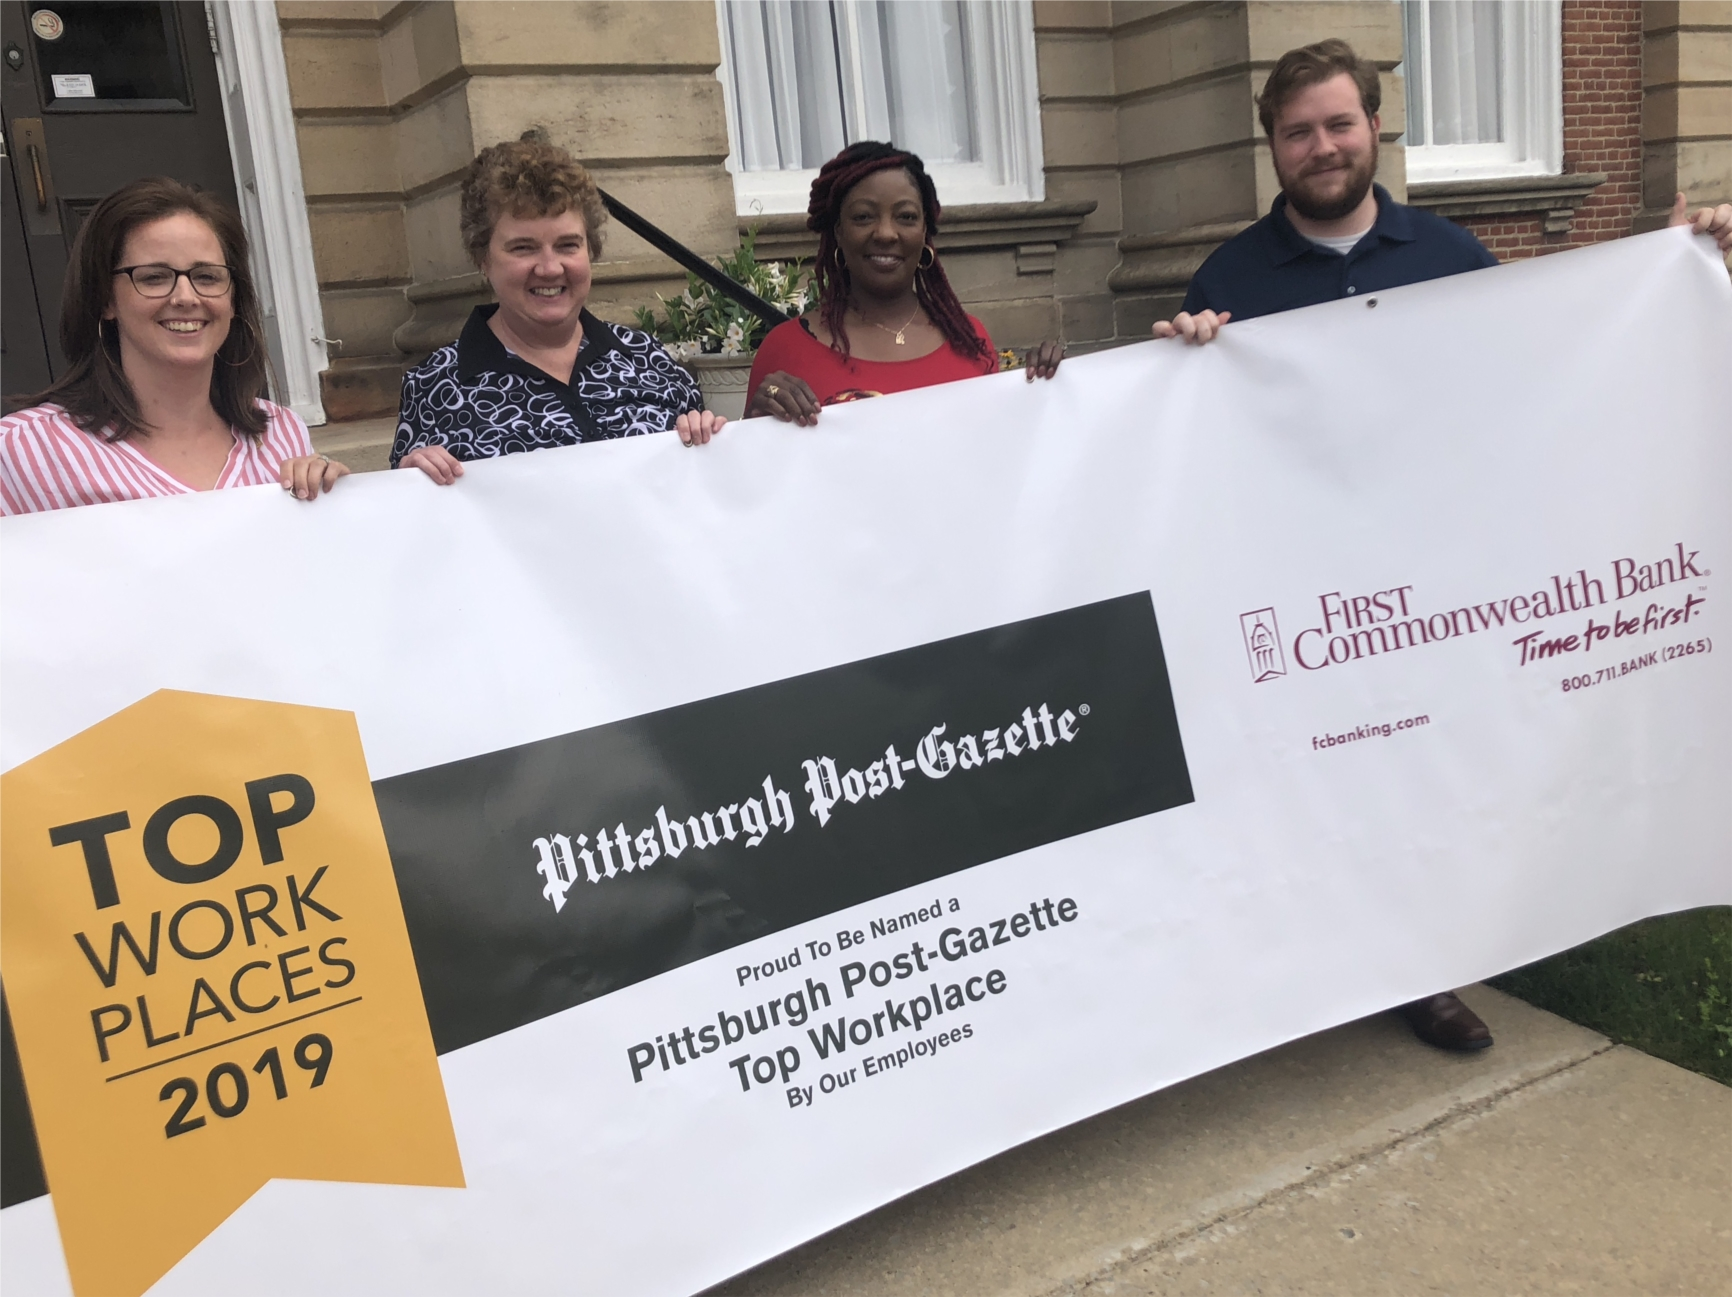 Indiana, PA employees celebrate being named a Top Workplace in 2019.